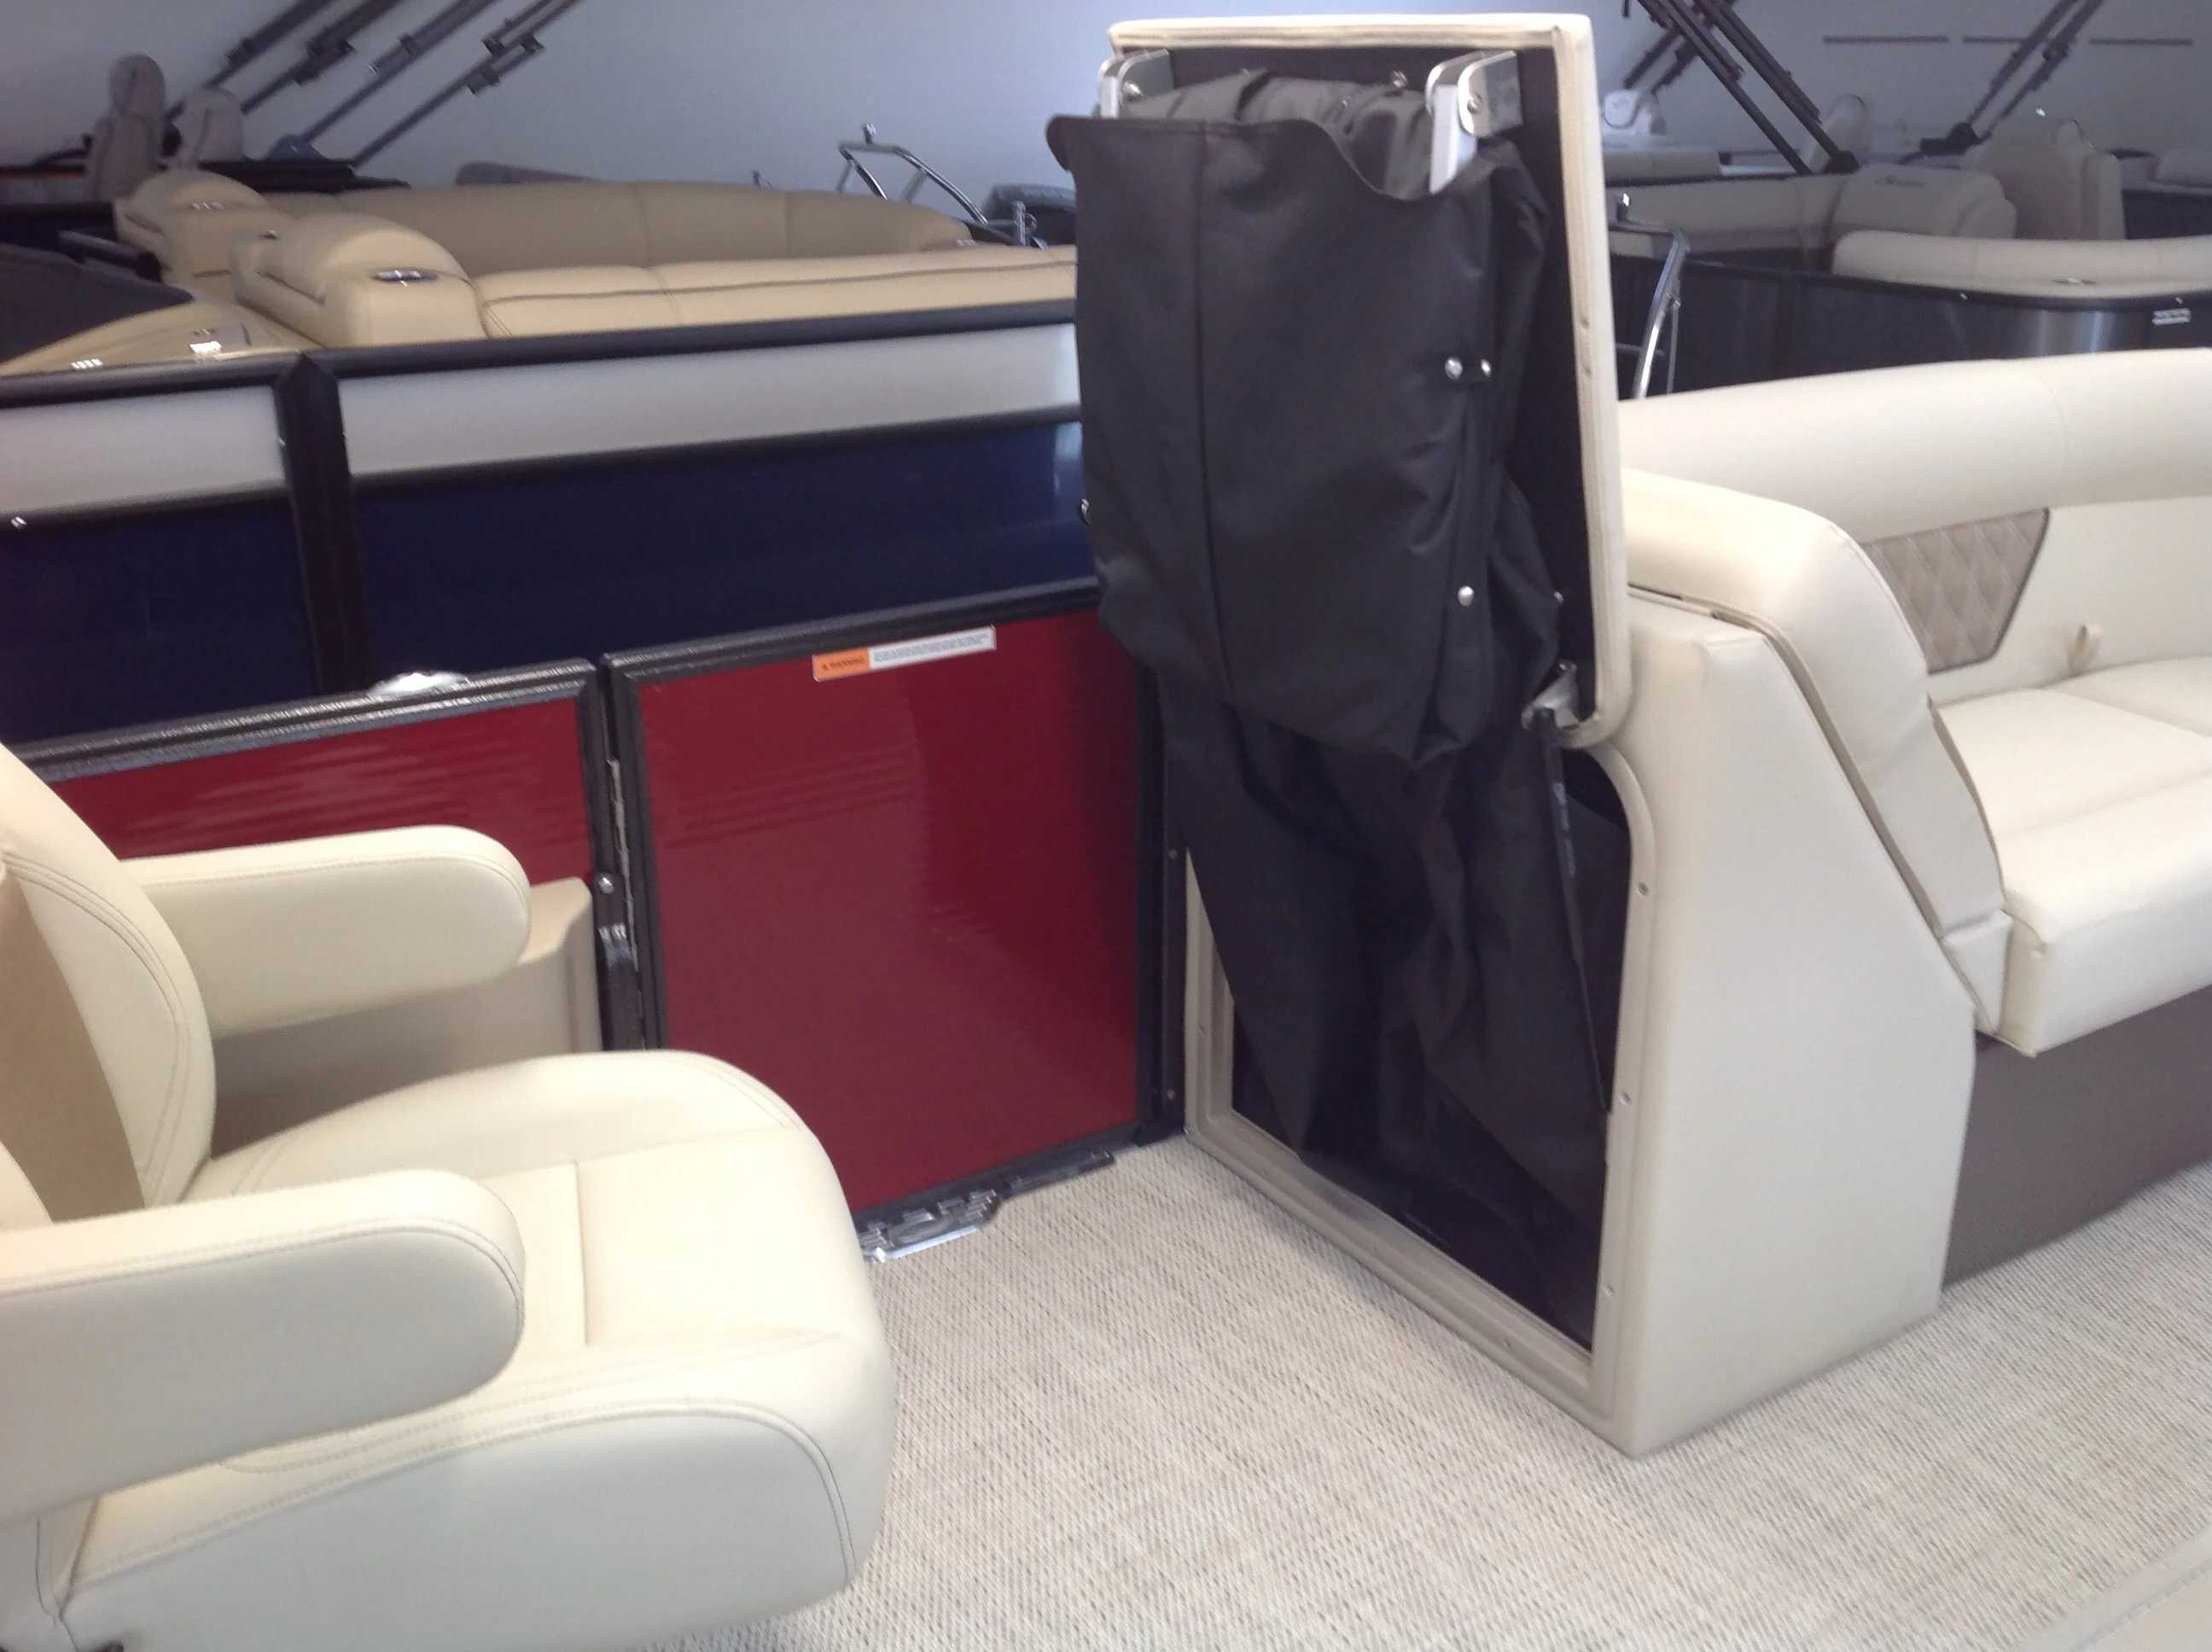 2021 Crest boat for sale, model of the boat is Cl Dlx 220slc & Image # 11 of 15